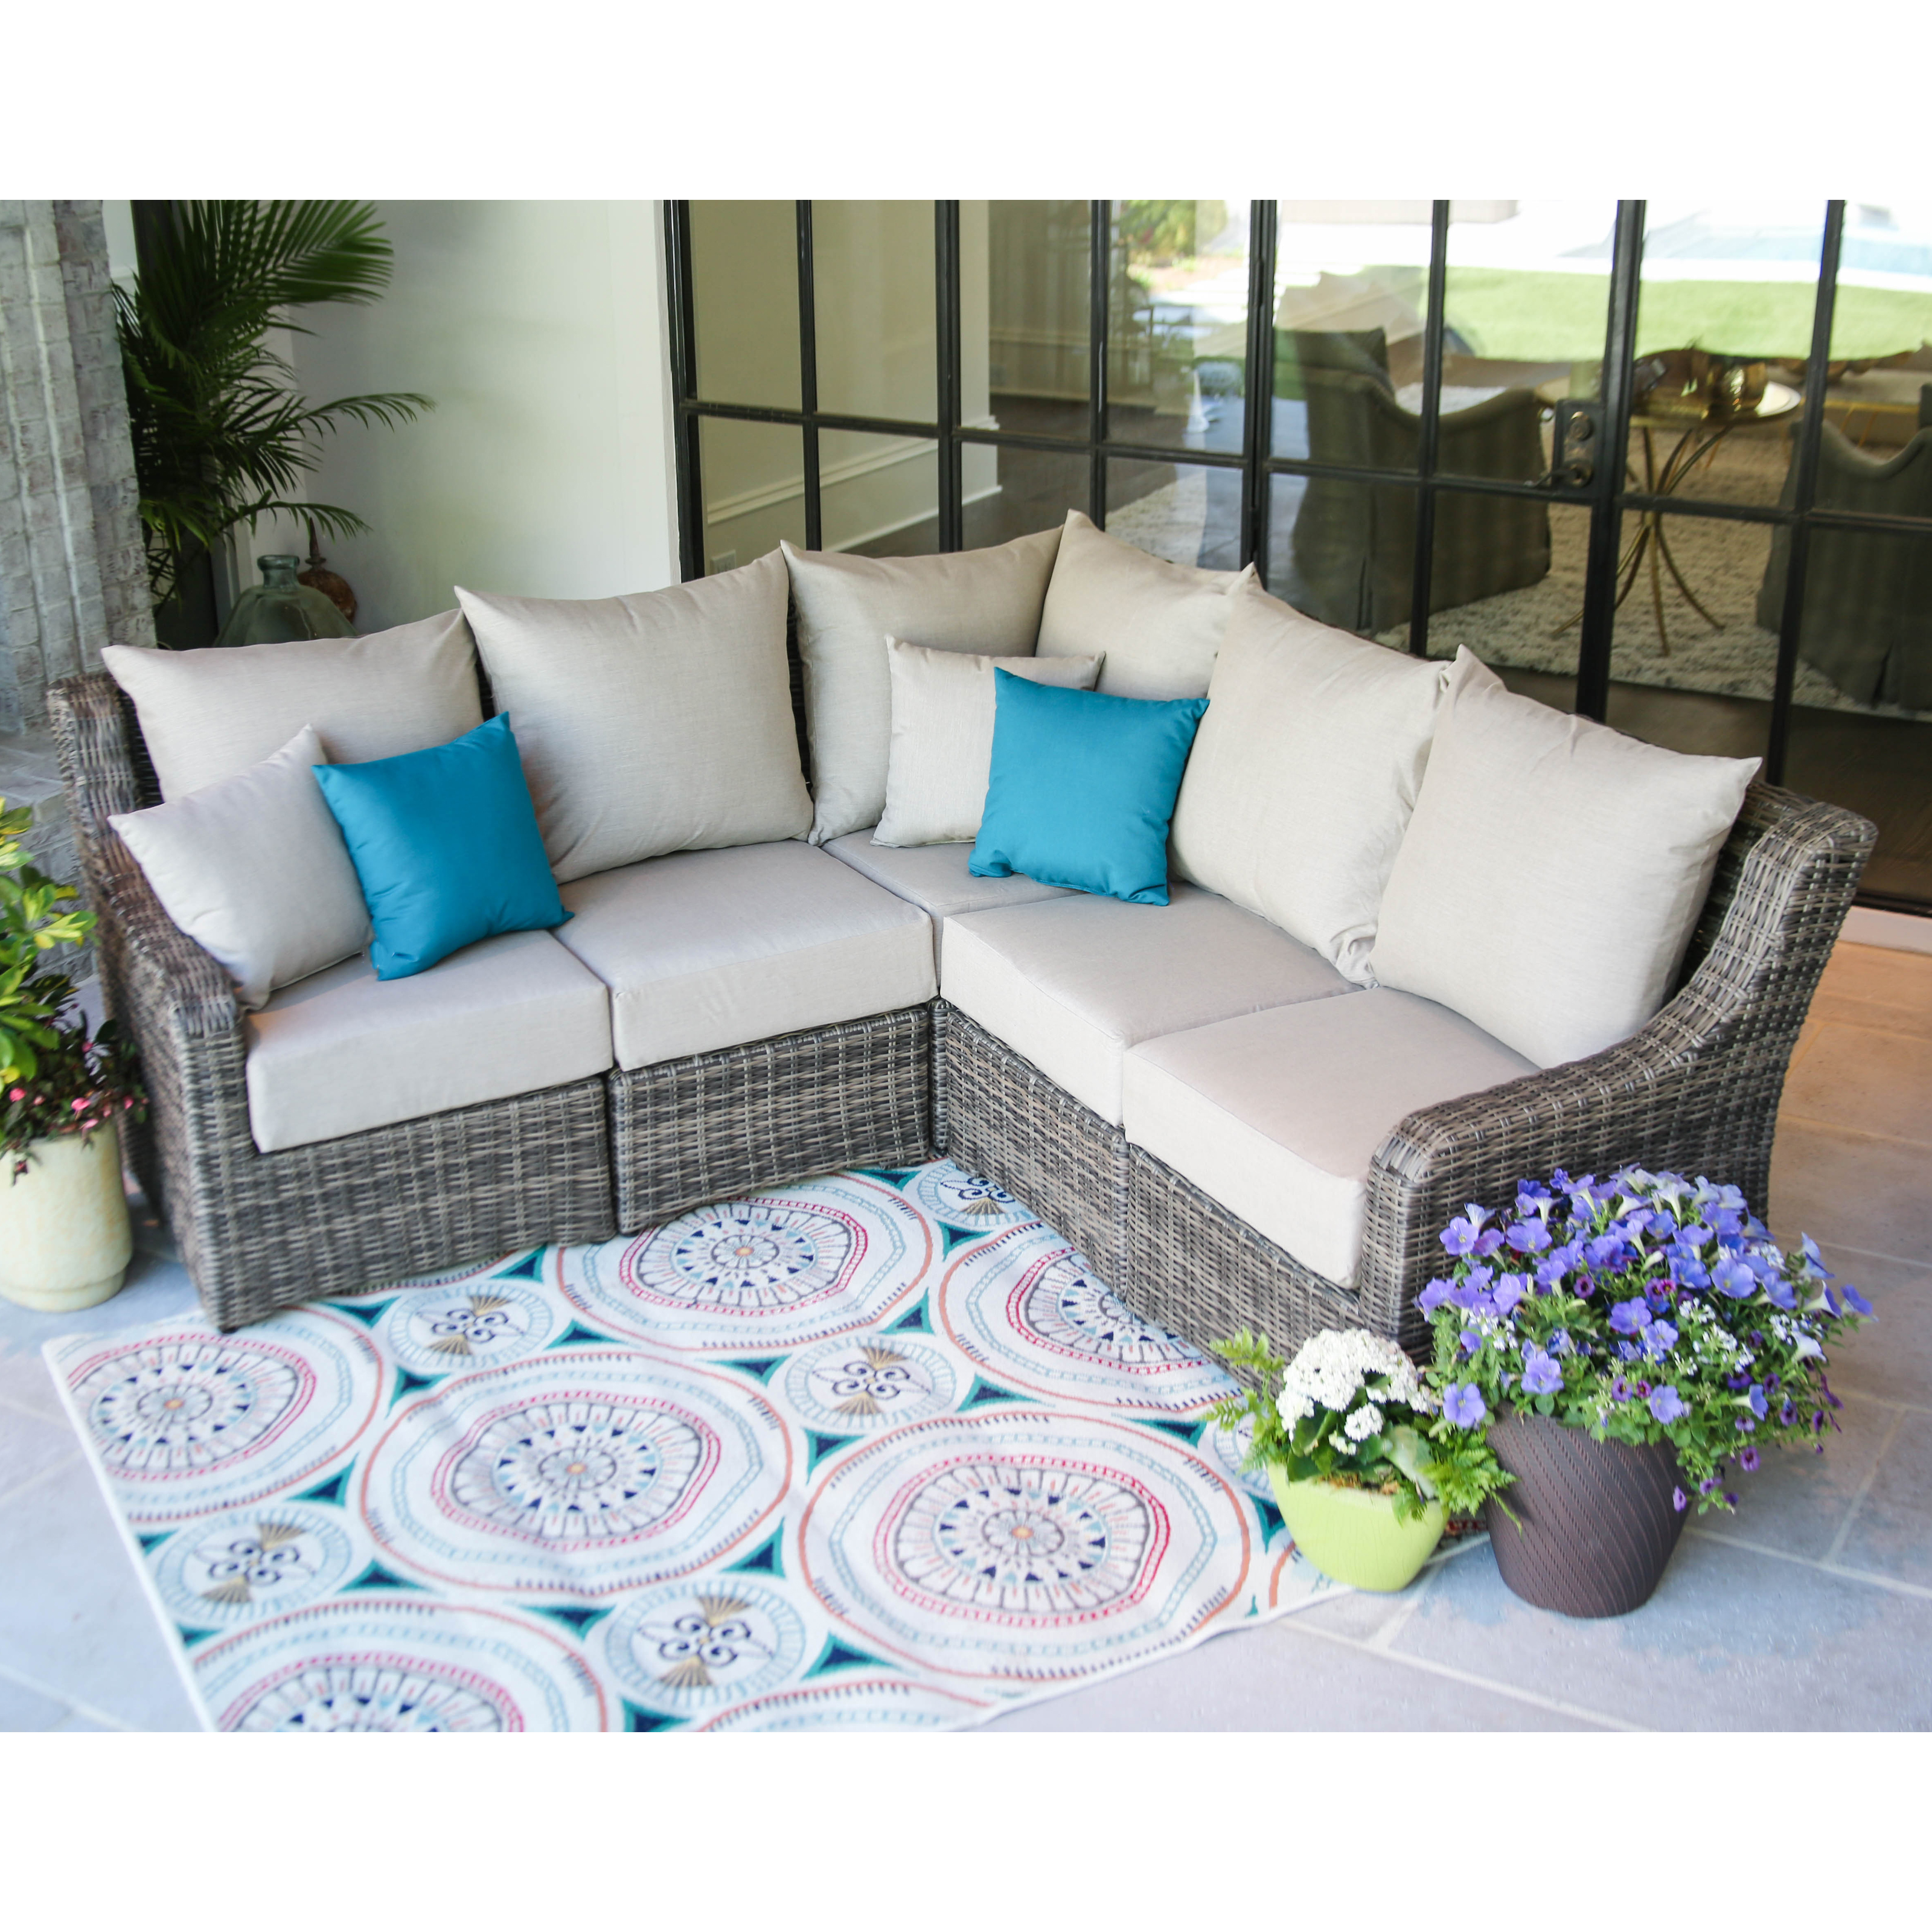 AE Outdoor Cherry Hill Wicker 5 Piece Sectional Patio Conversation Set